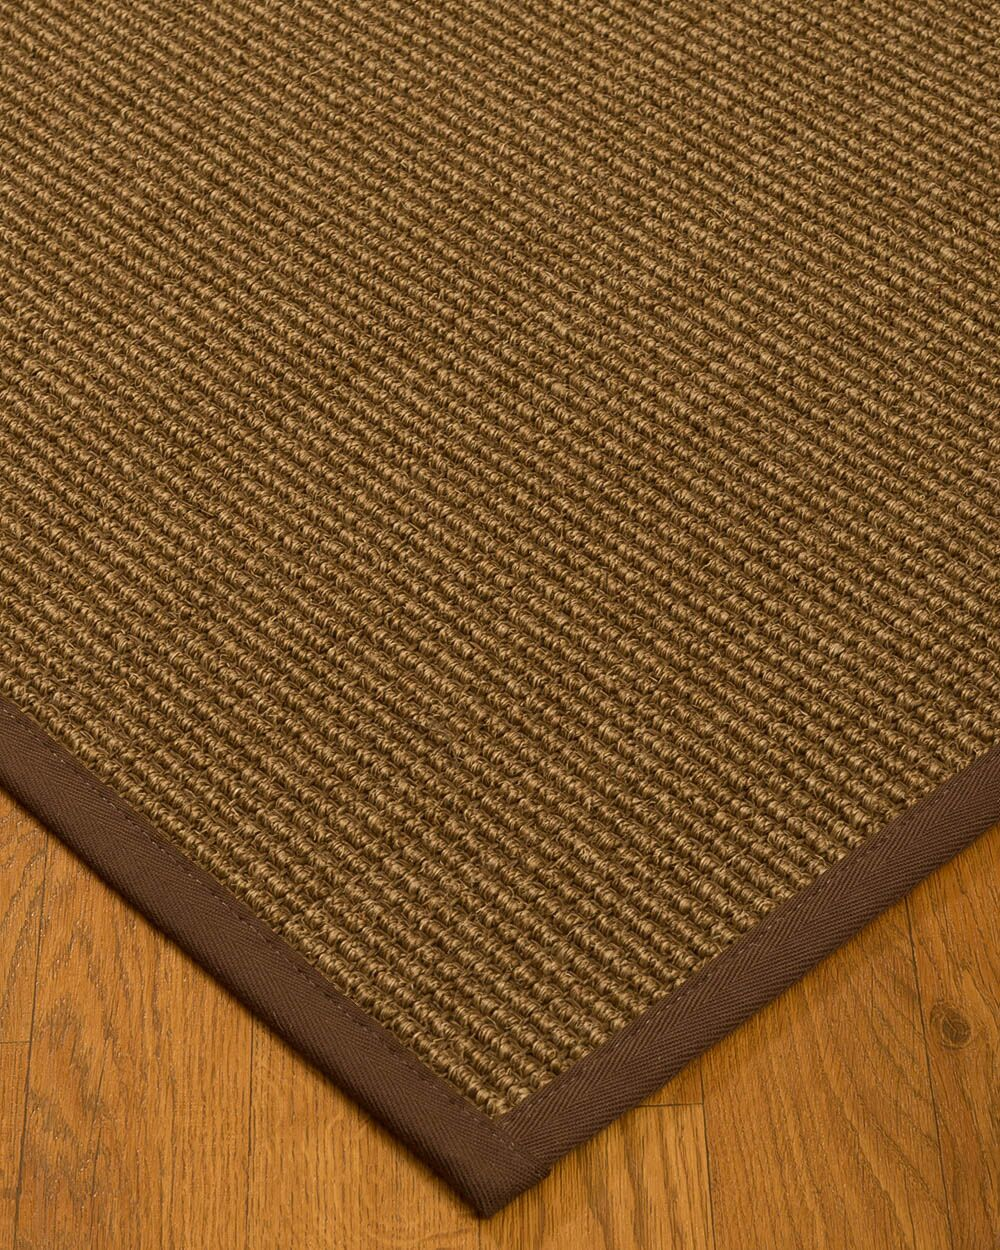 Kimbolton Hand-Woven Brown Area Rug Rug Size: Rectangle 5' x 8'